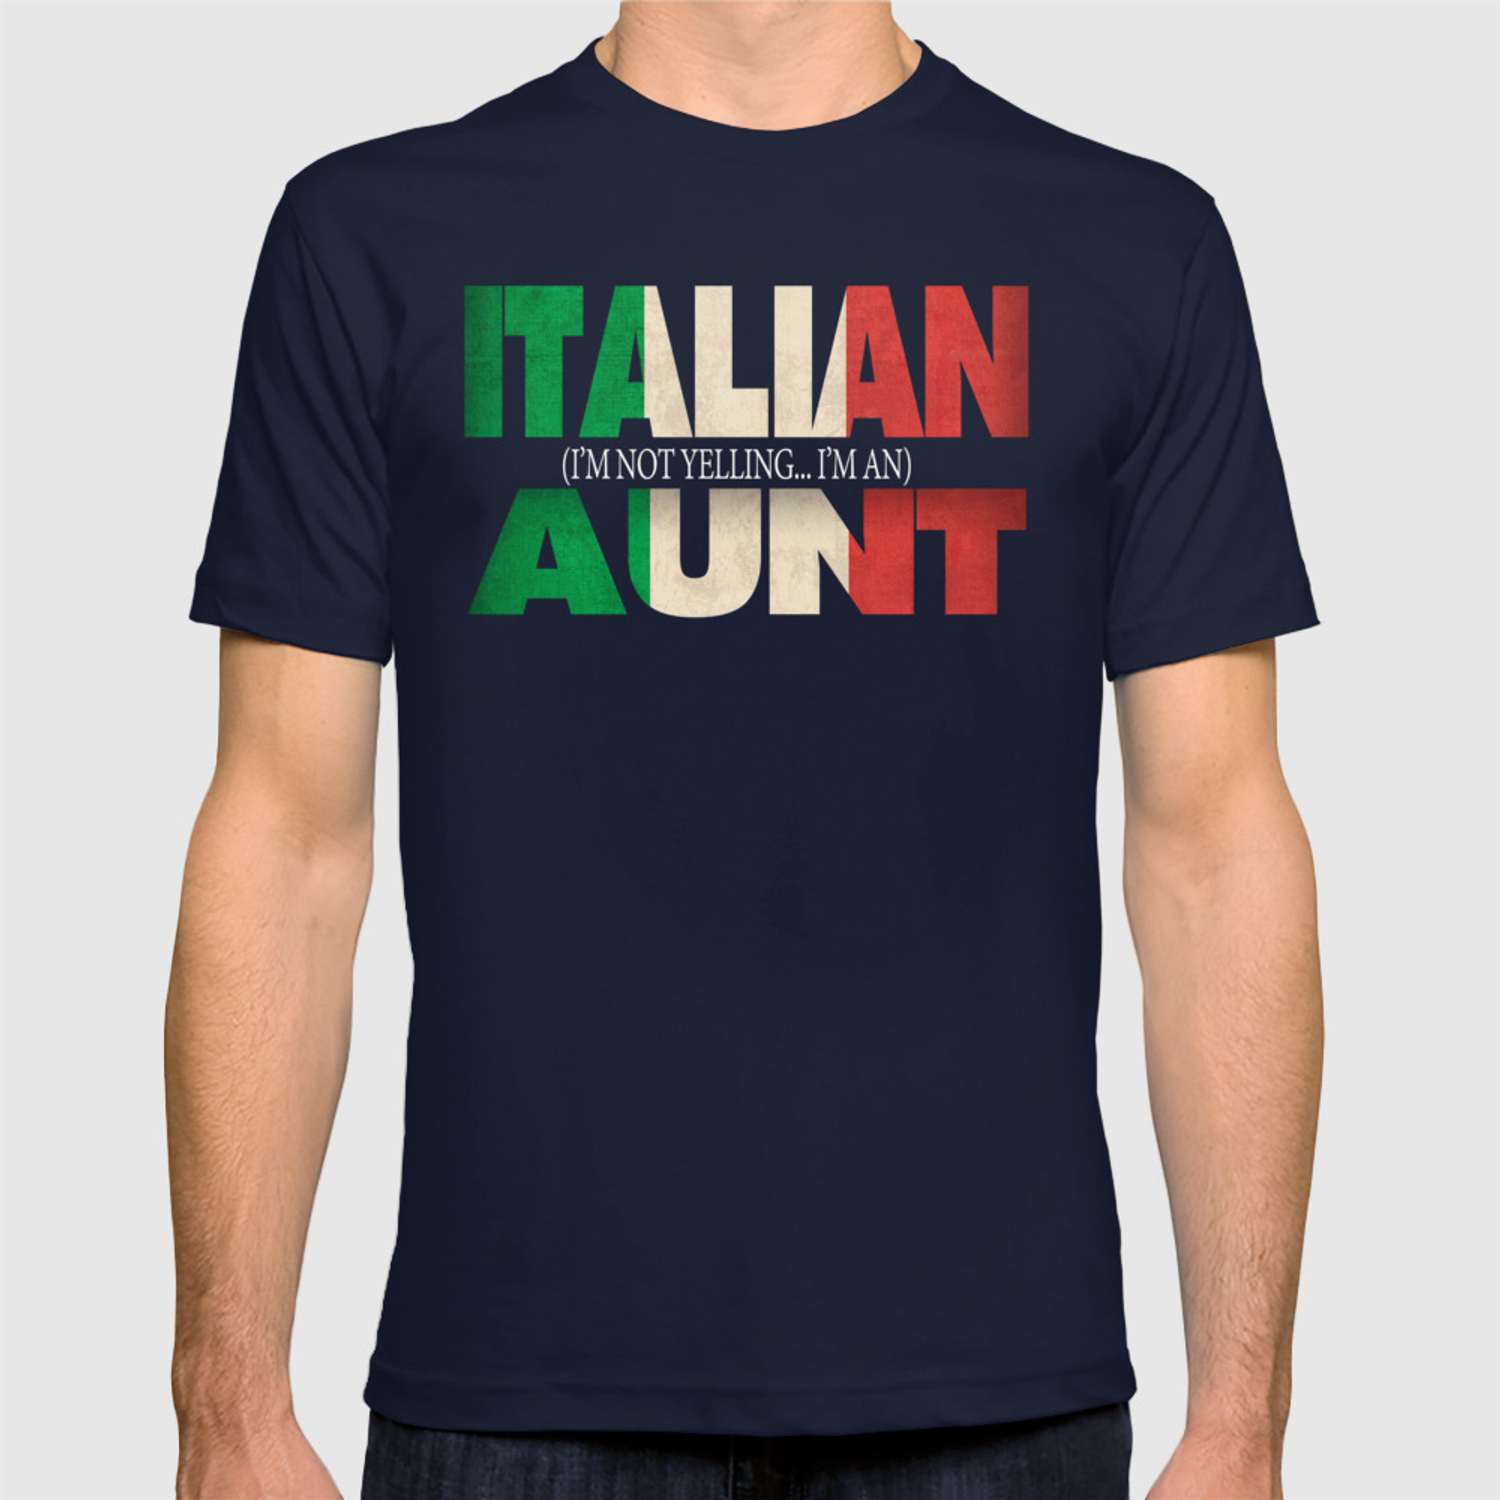 46feab2d4 Funny Italian Aunt Gift Not Yelling Italian Flag T-shirt by ...